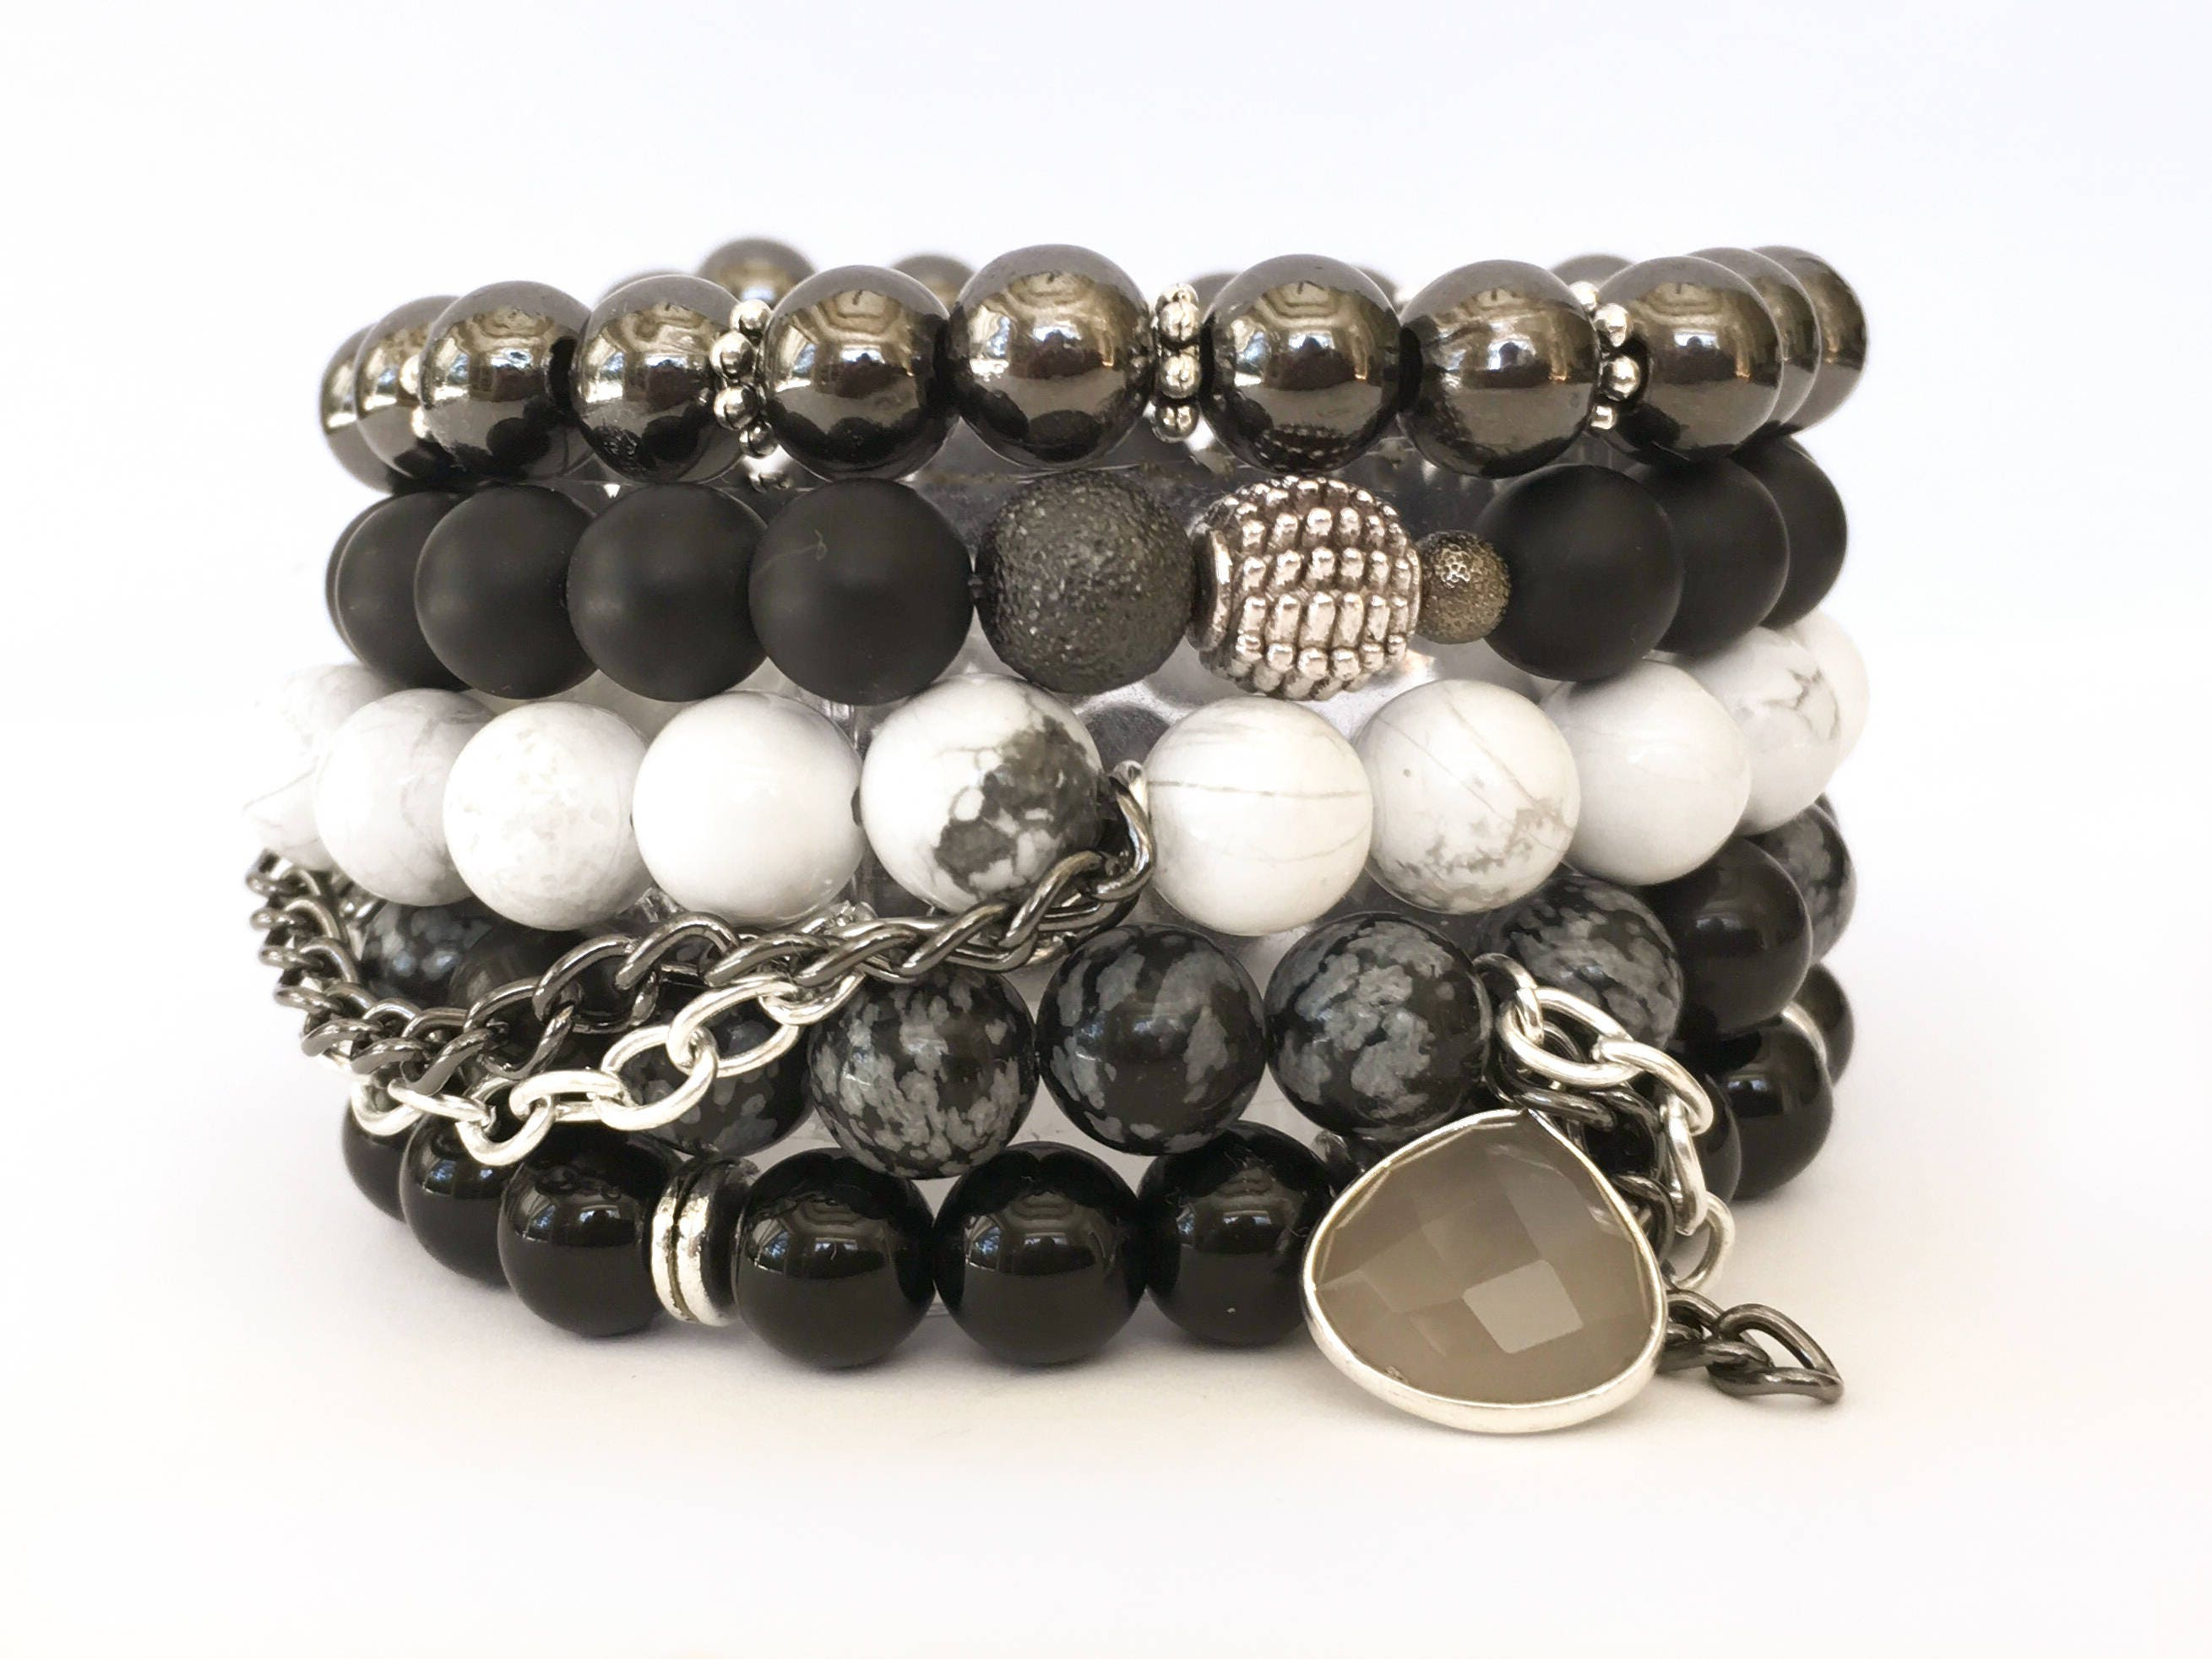 double crucible collections bracelet west bracelets s natural layered stone bead men mens products wide